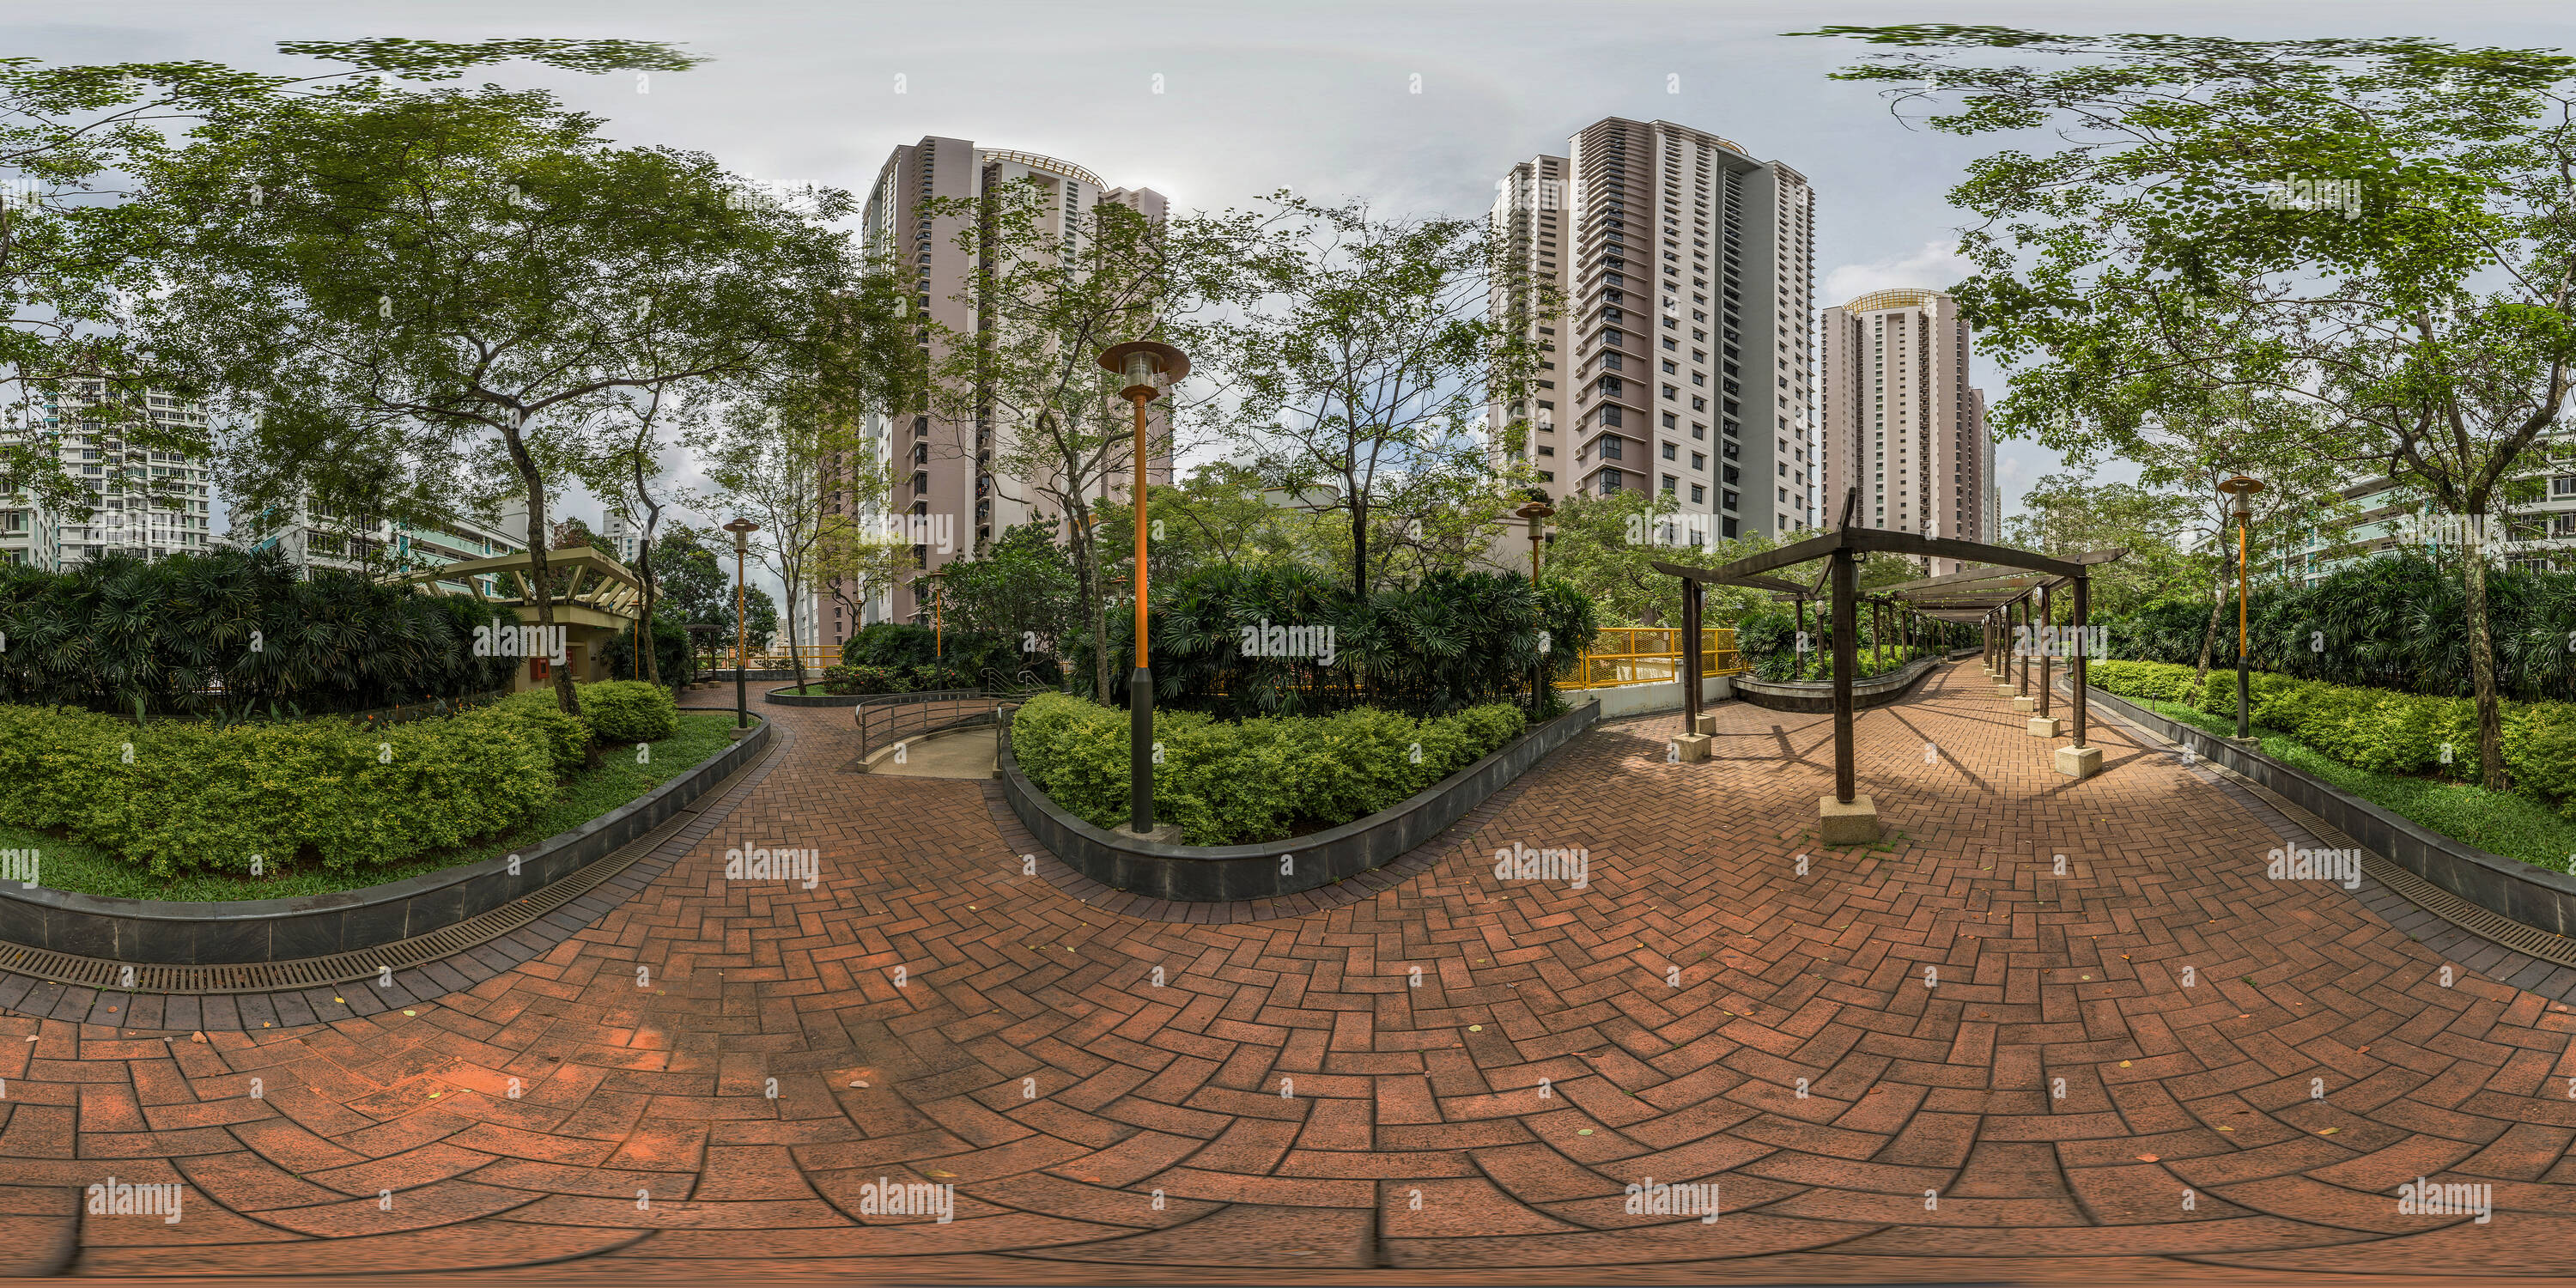 SINGAPORE - Toa Payoh, Block 79 - Stock Image